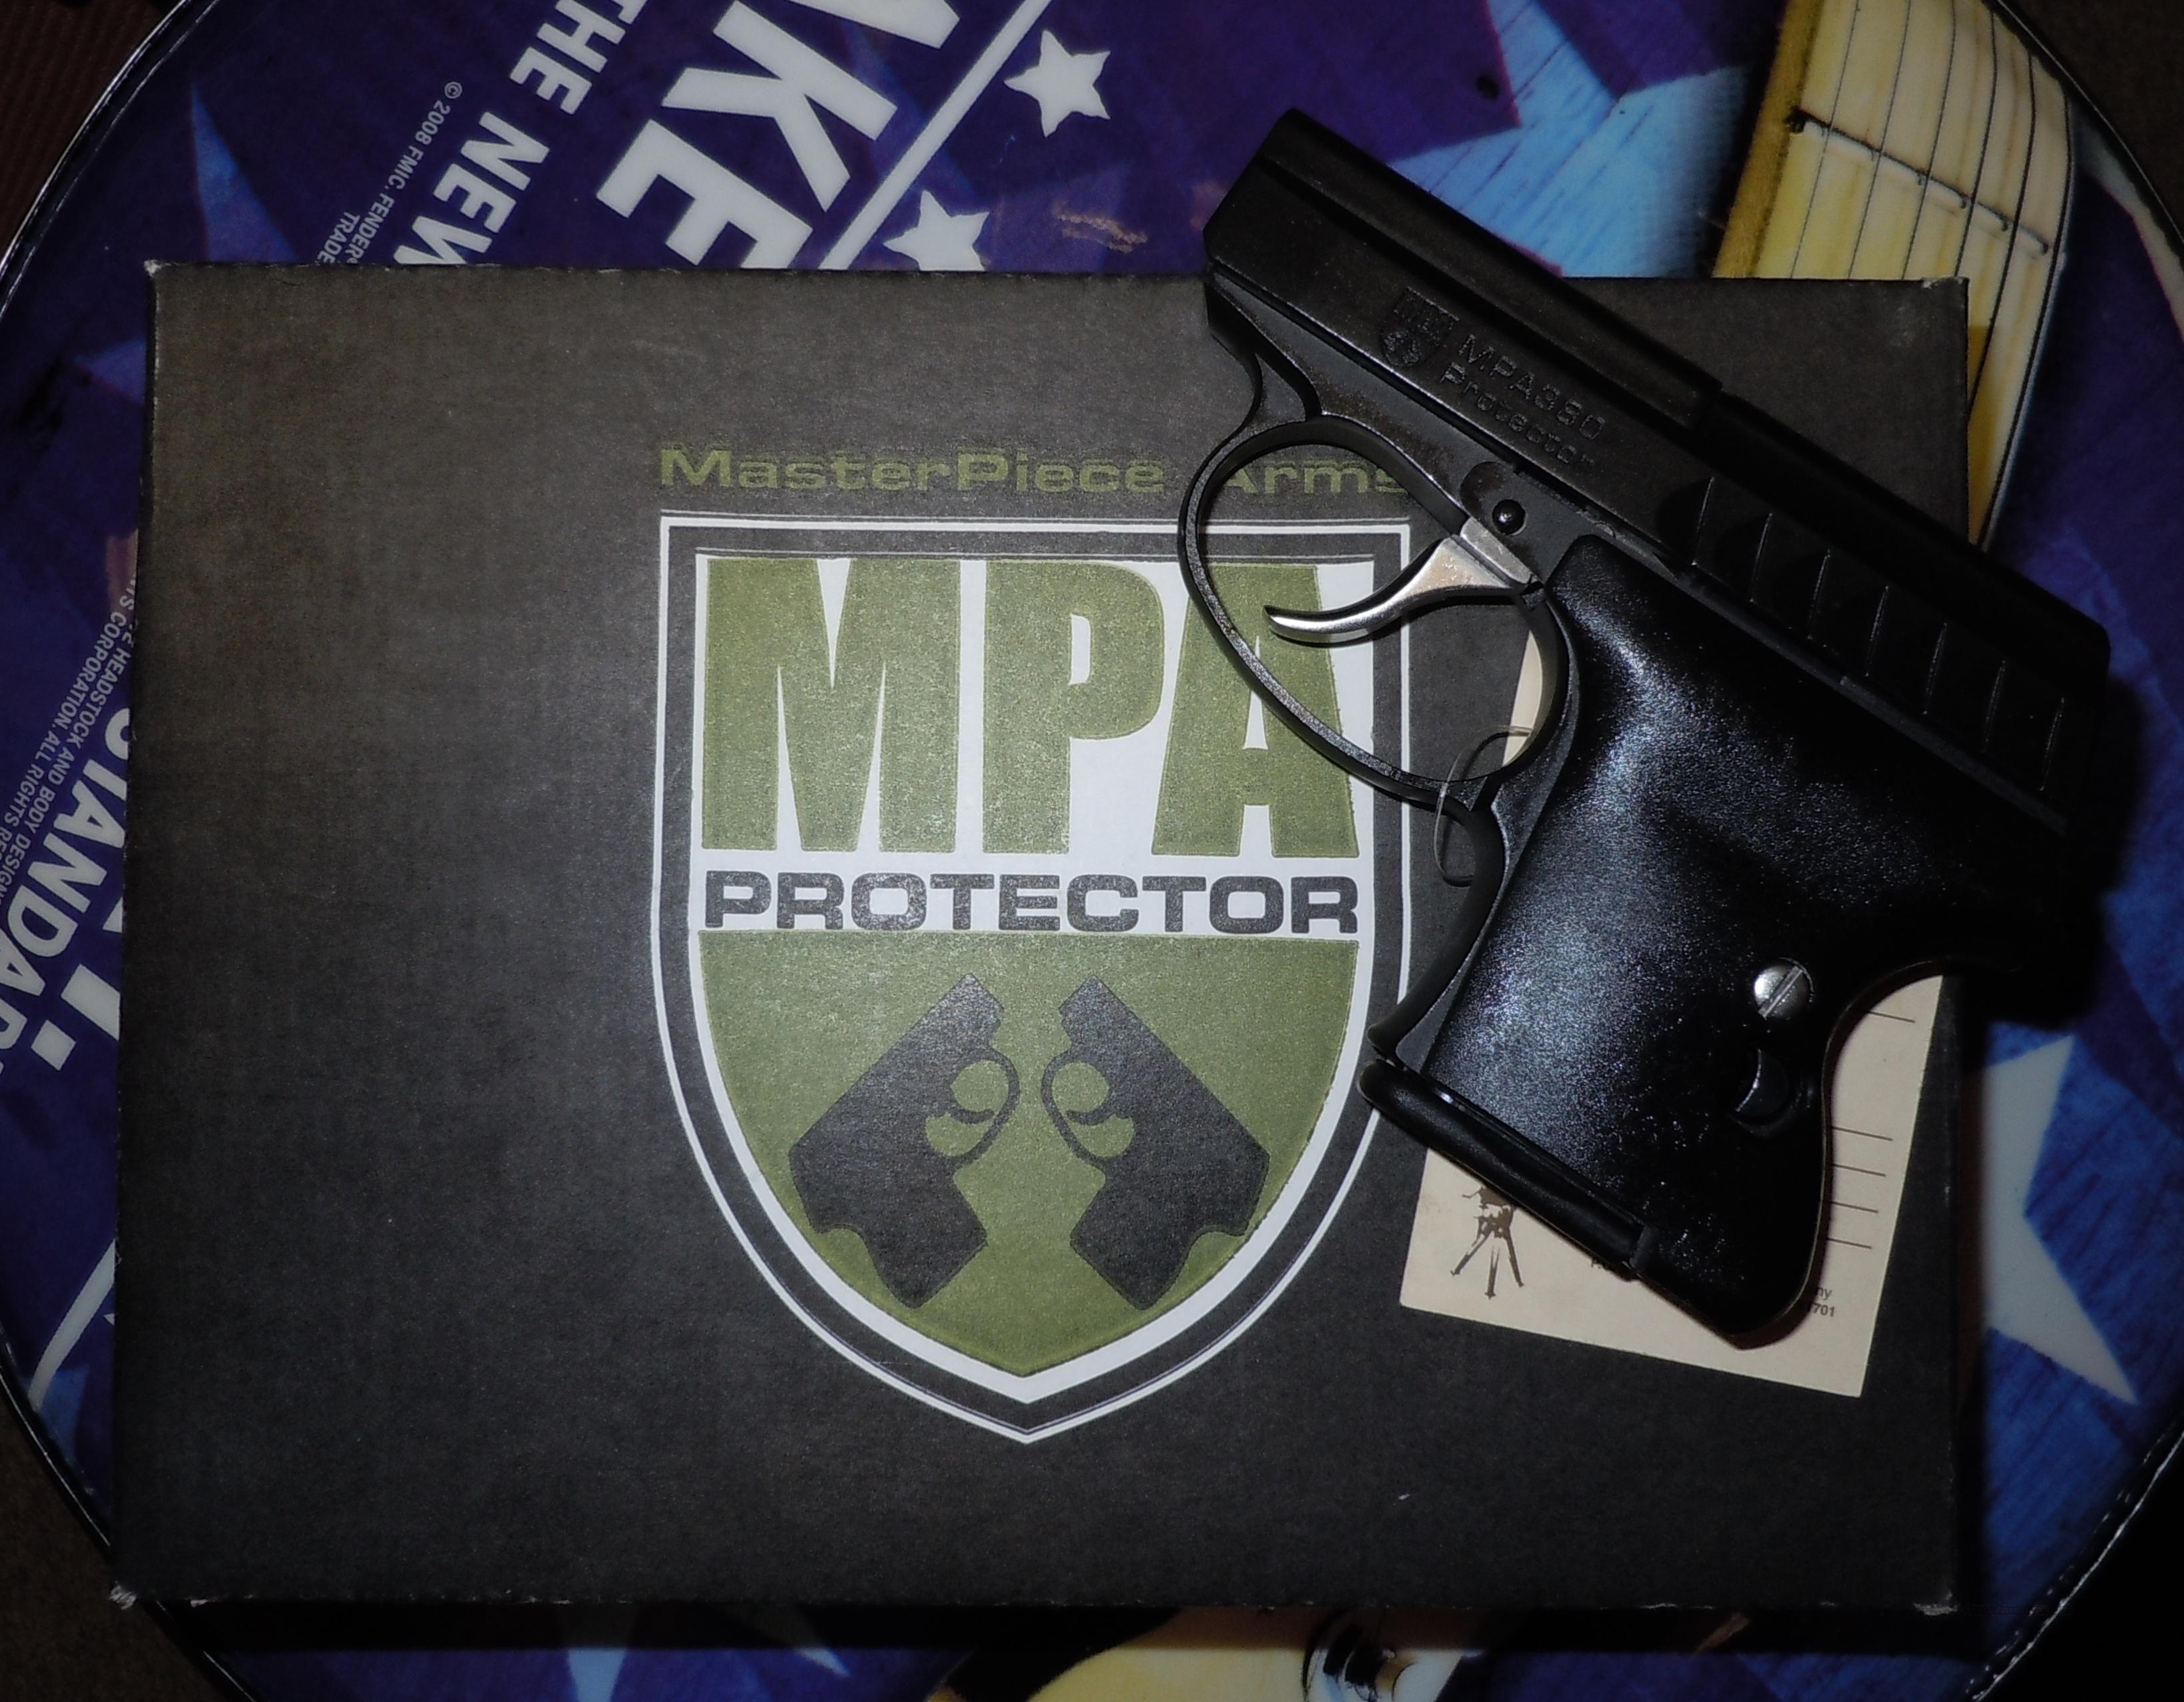 MASTERPIECE ARMS MPA380B PROTECTOR  380ACP SUBCOMPACT PISTOL, ONE OF THE SMALLEST ON THE MARKET  Guns > Pistols > MasterPiece Arms Pistols > Protector